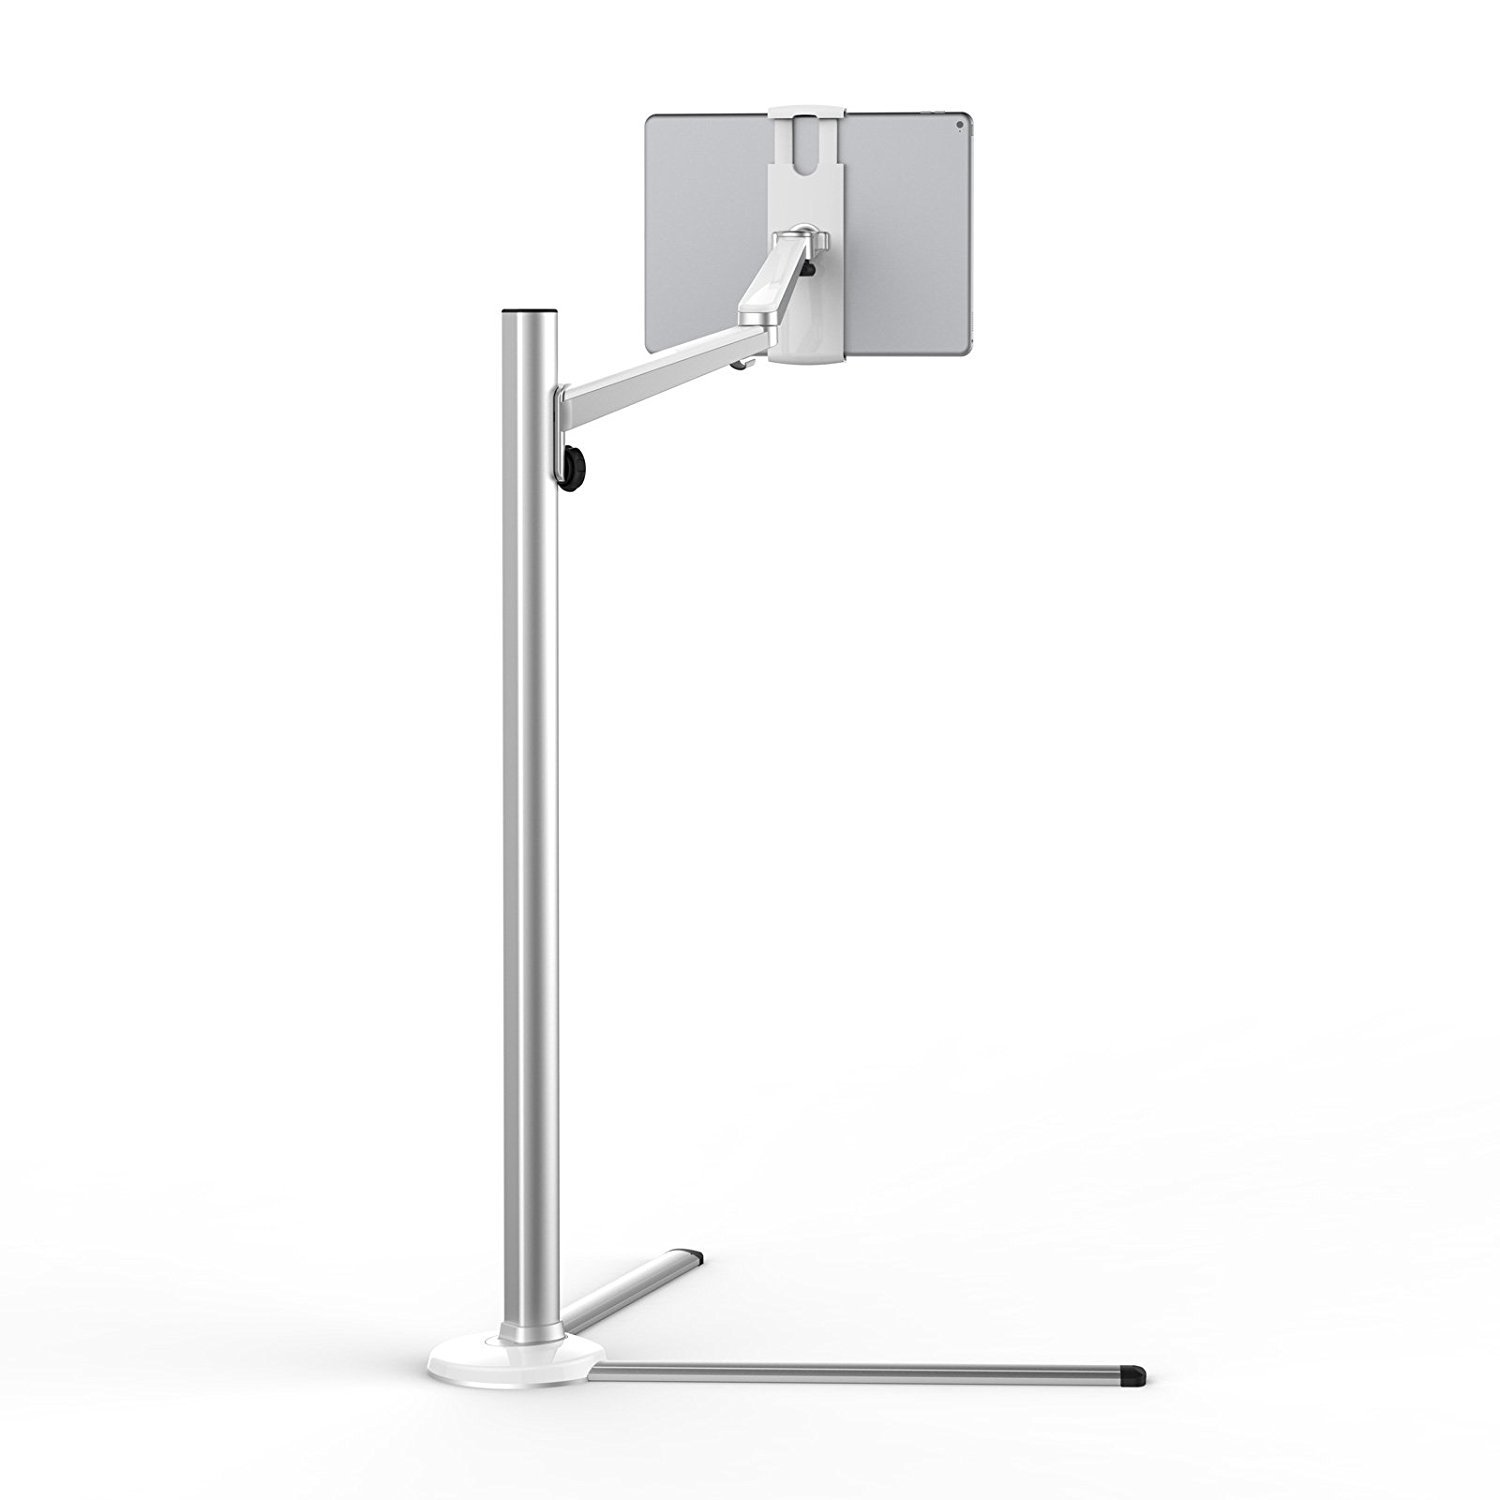 UPERGO Floor Stand Cell Phones, Tablets E-Readers, Height Adjustable, 360 Degree Rotating(UP-6S), Silver